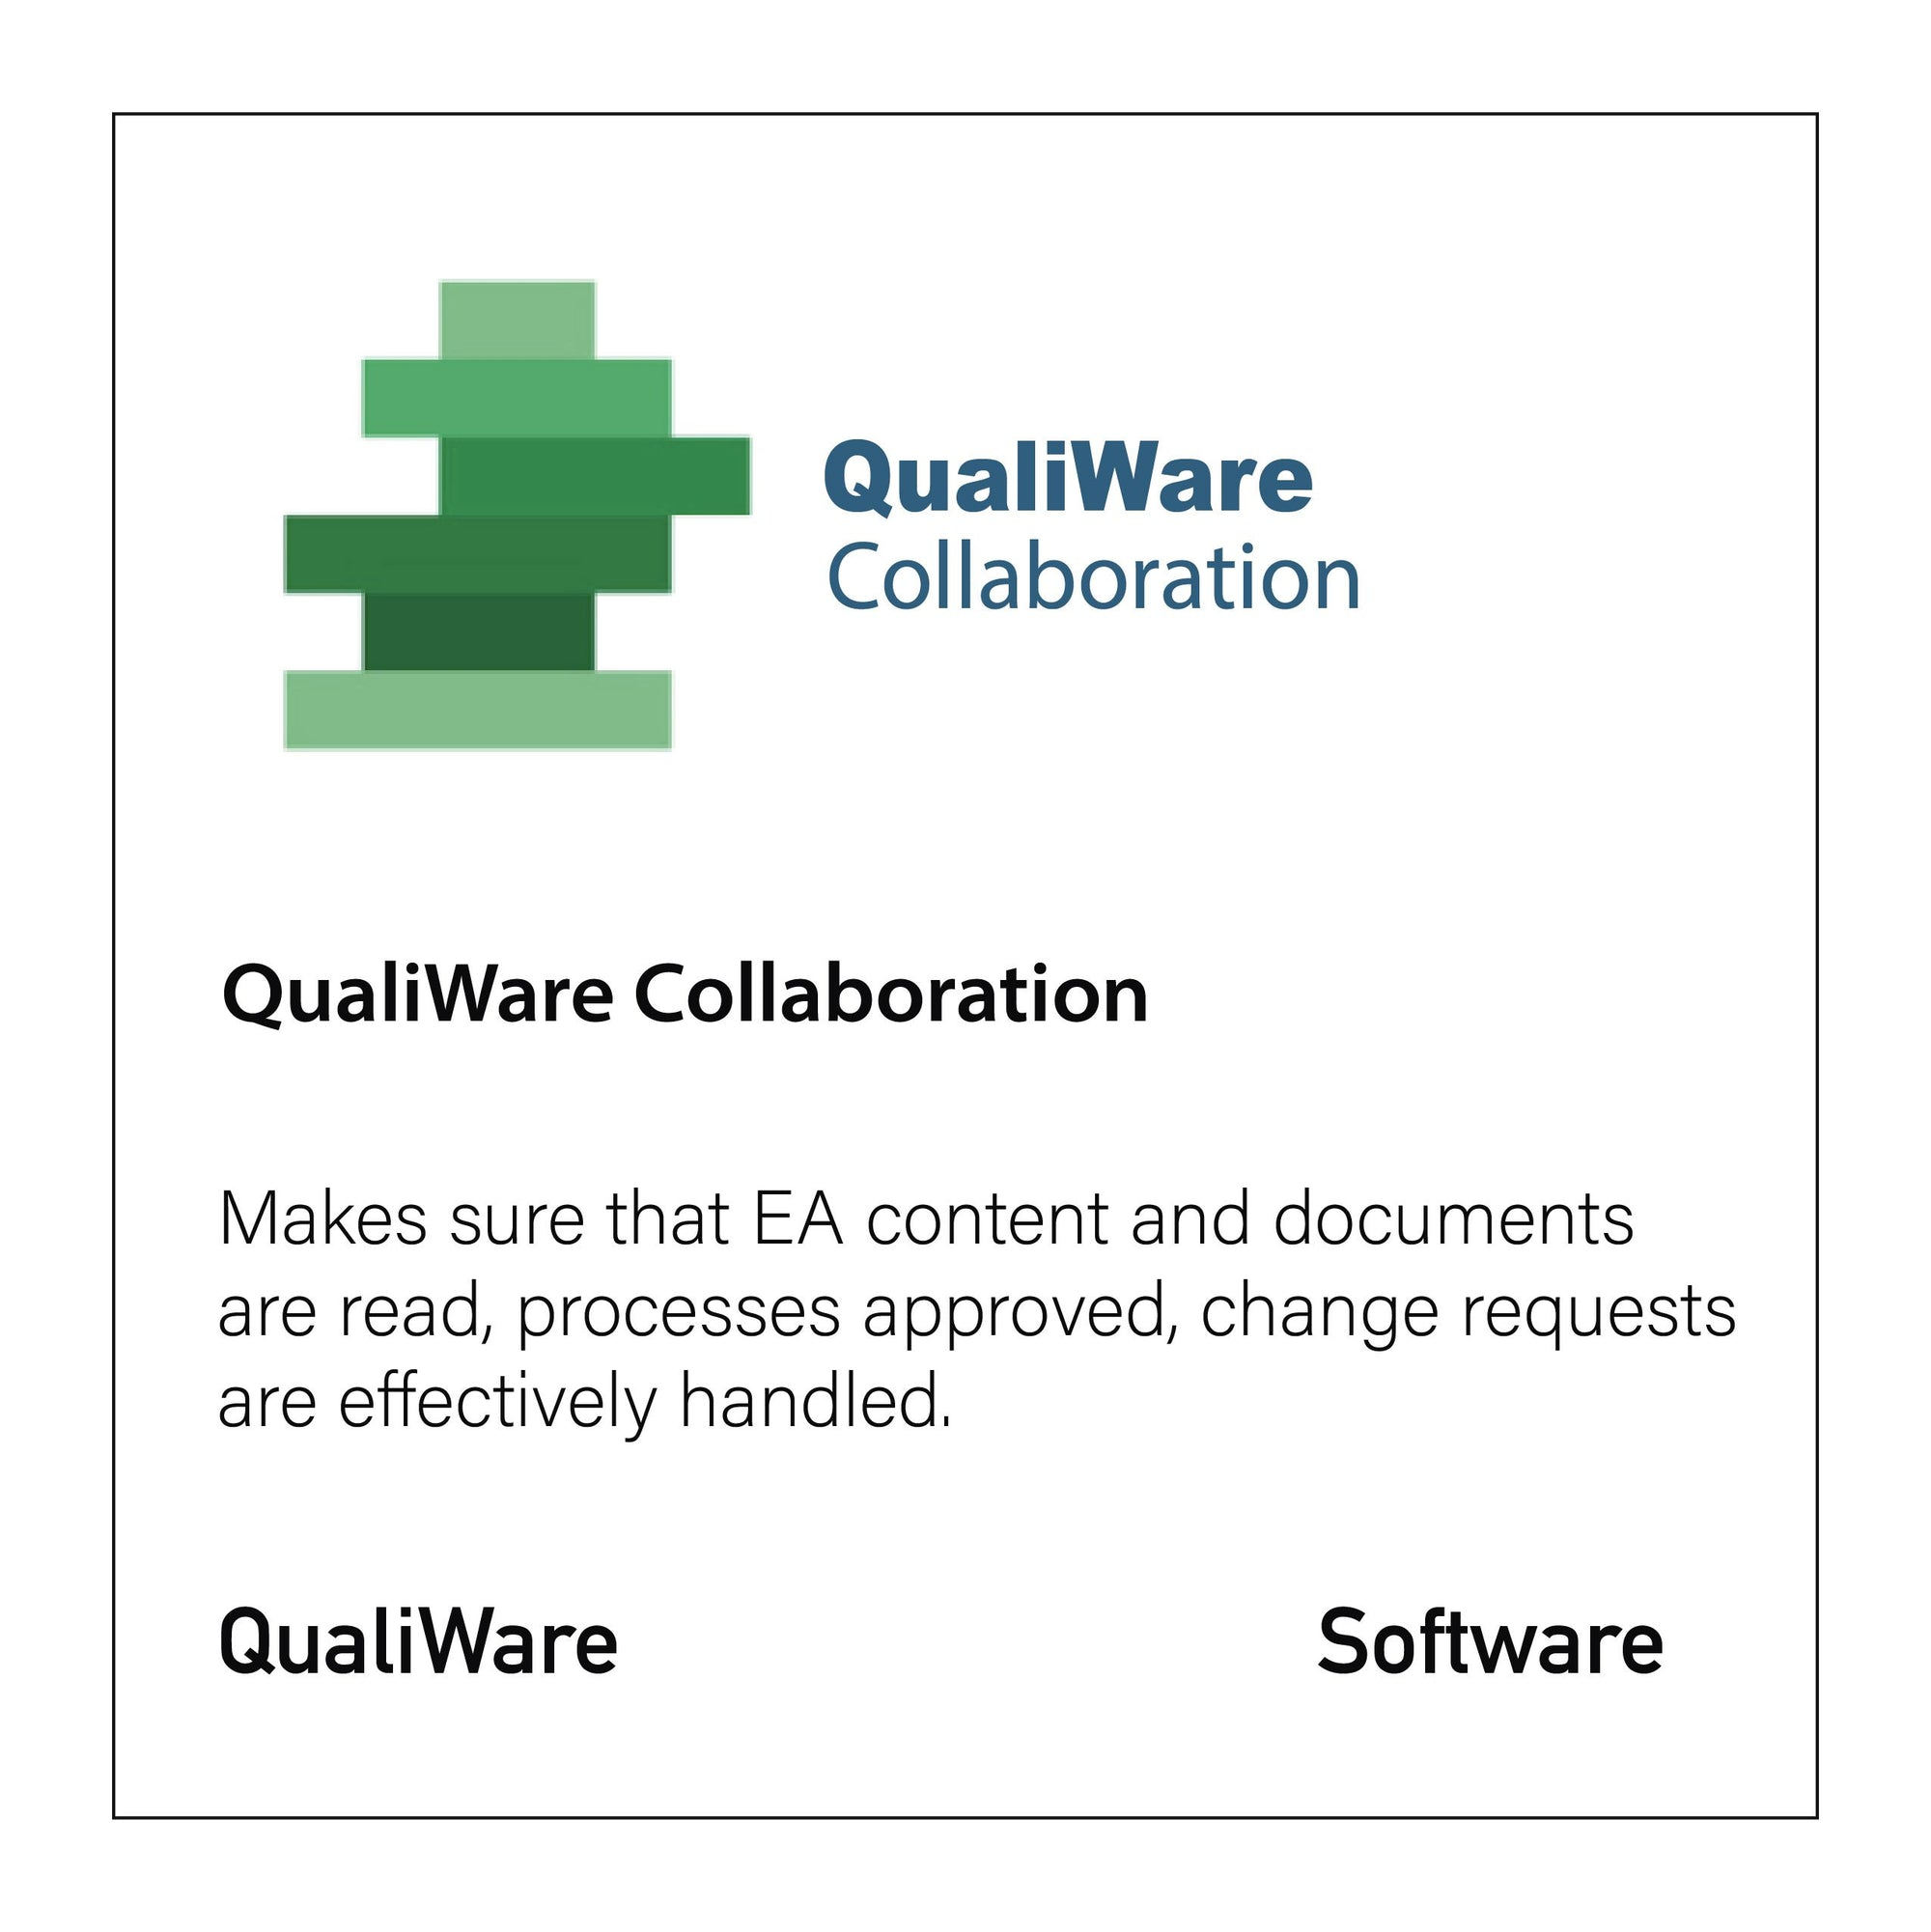 QualiWare Collaboration - CloseReach Ltd